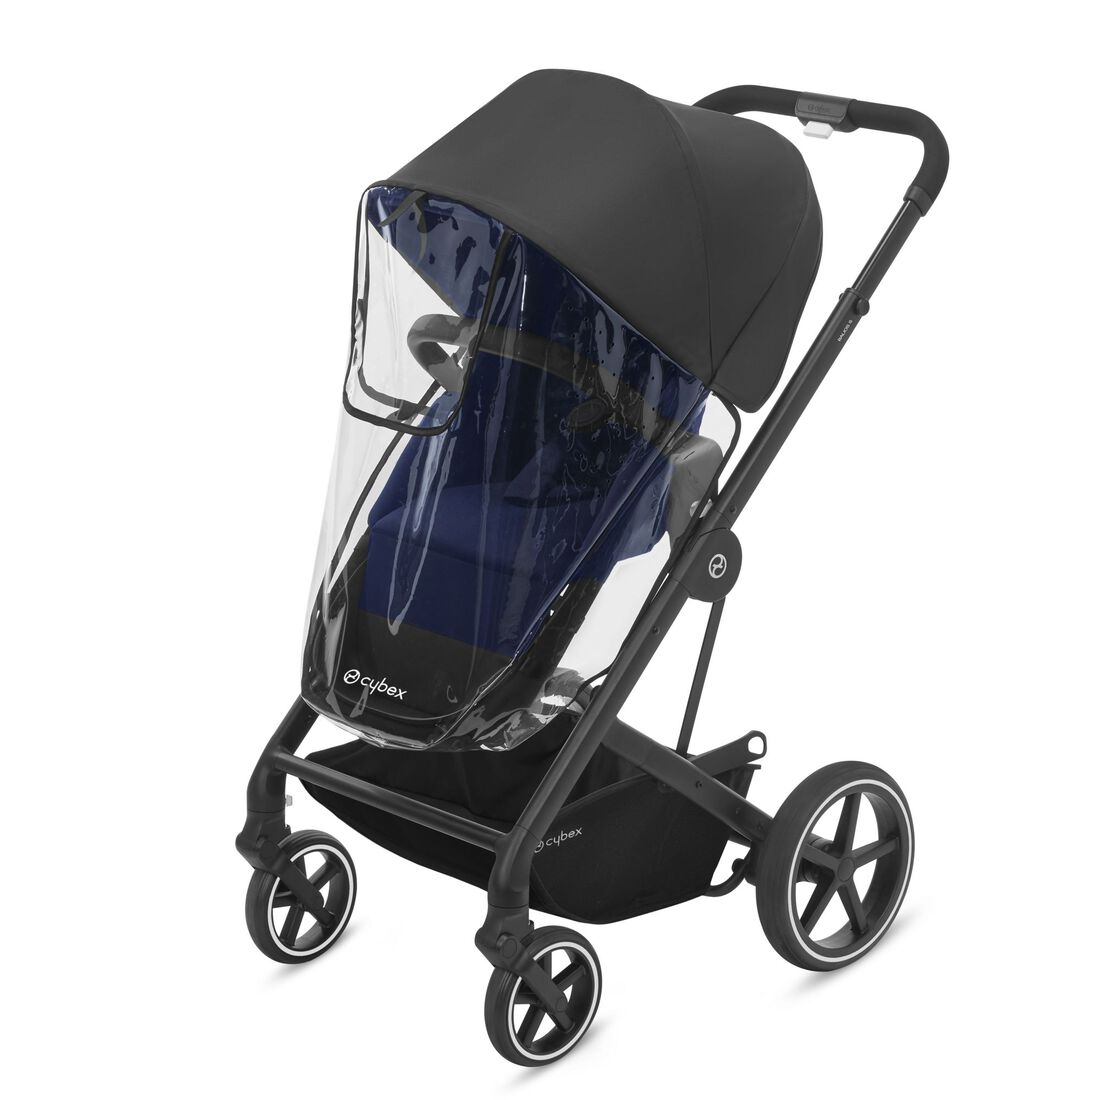 CYBEX Rain Cover Balios S 2-in-1/Talos S 2-in-1 - Transparent in Transparent large image number 1